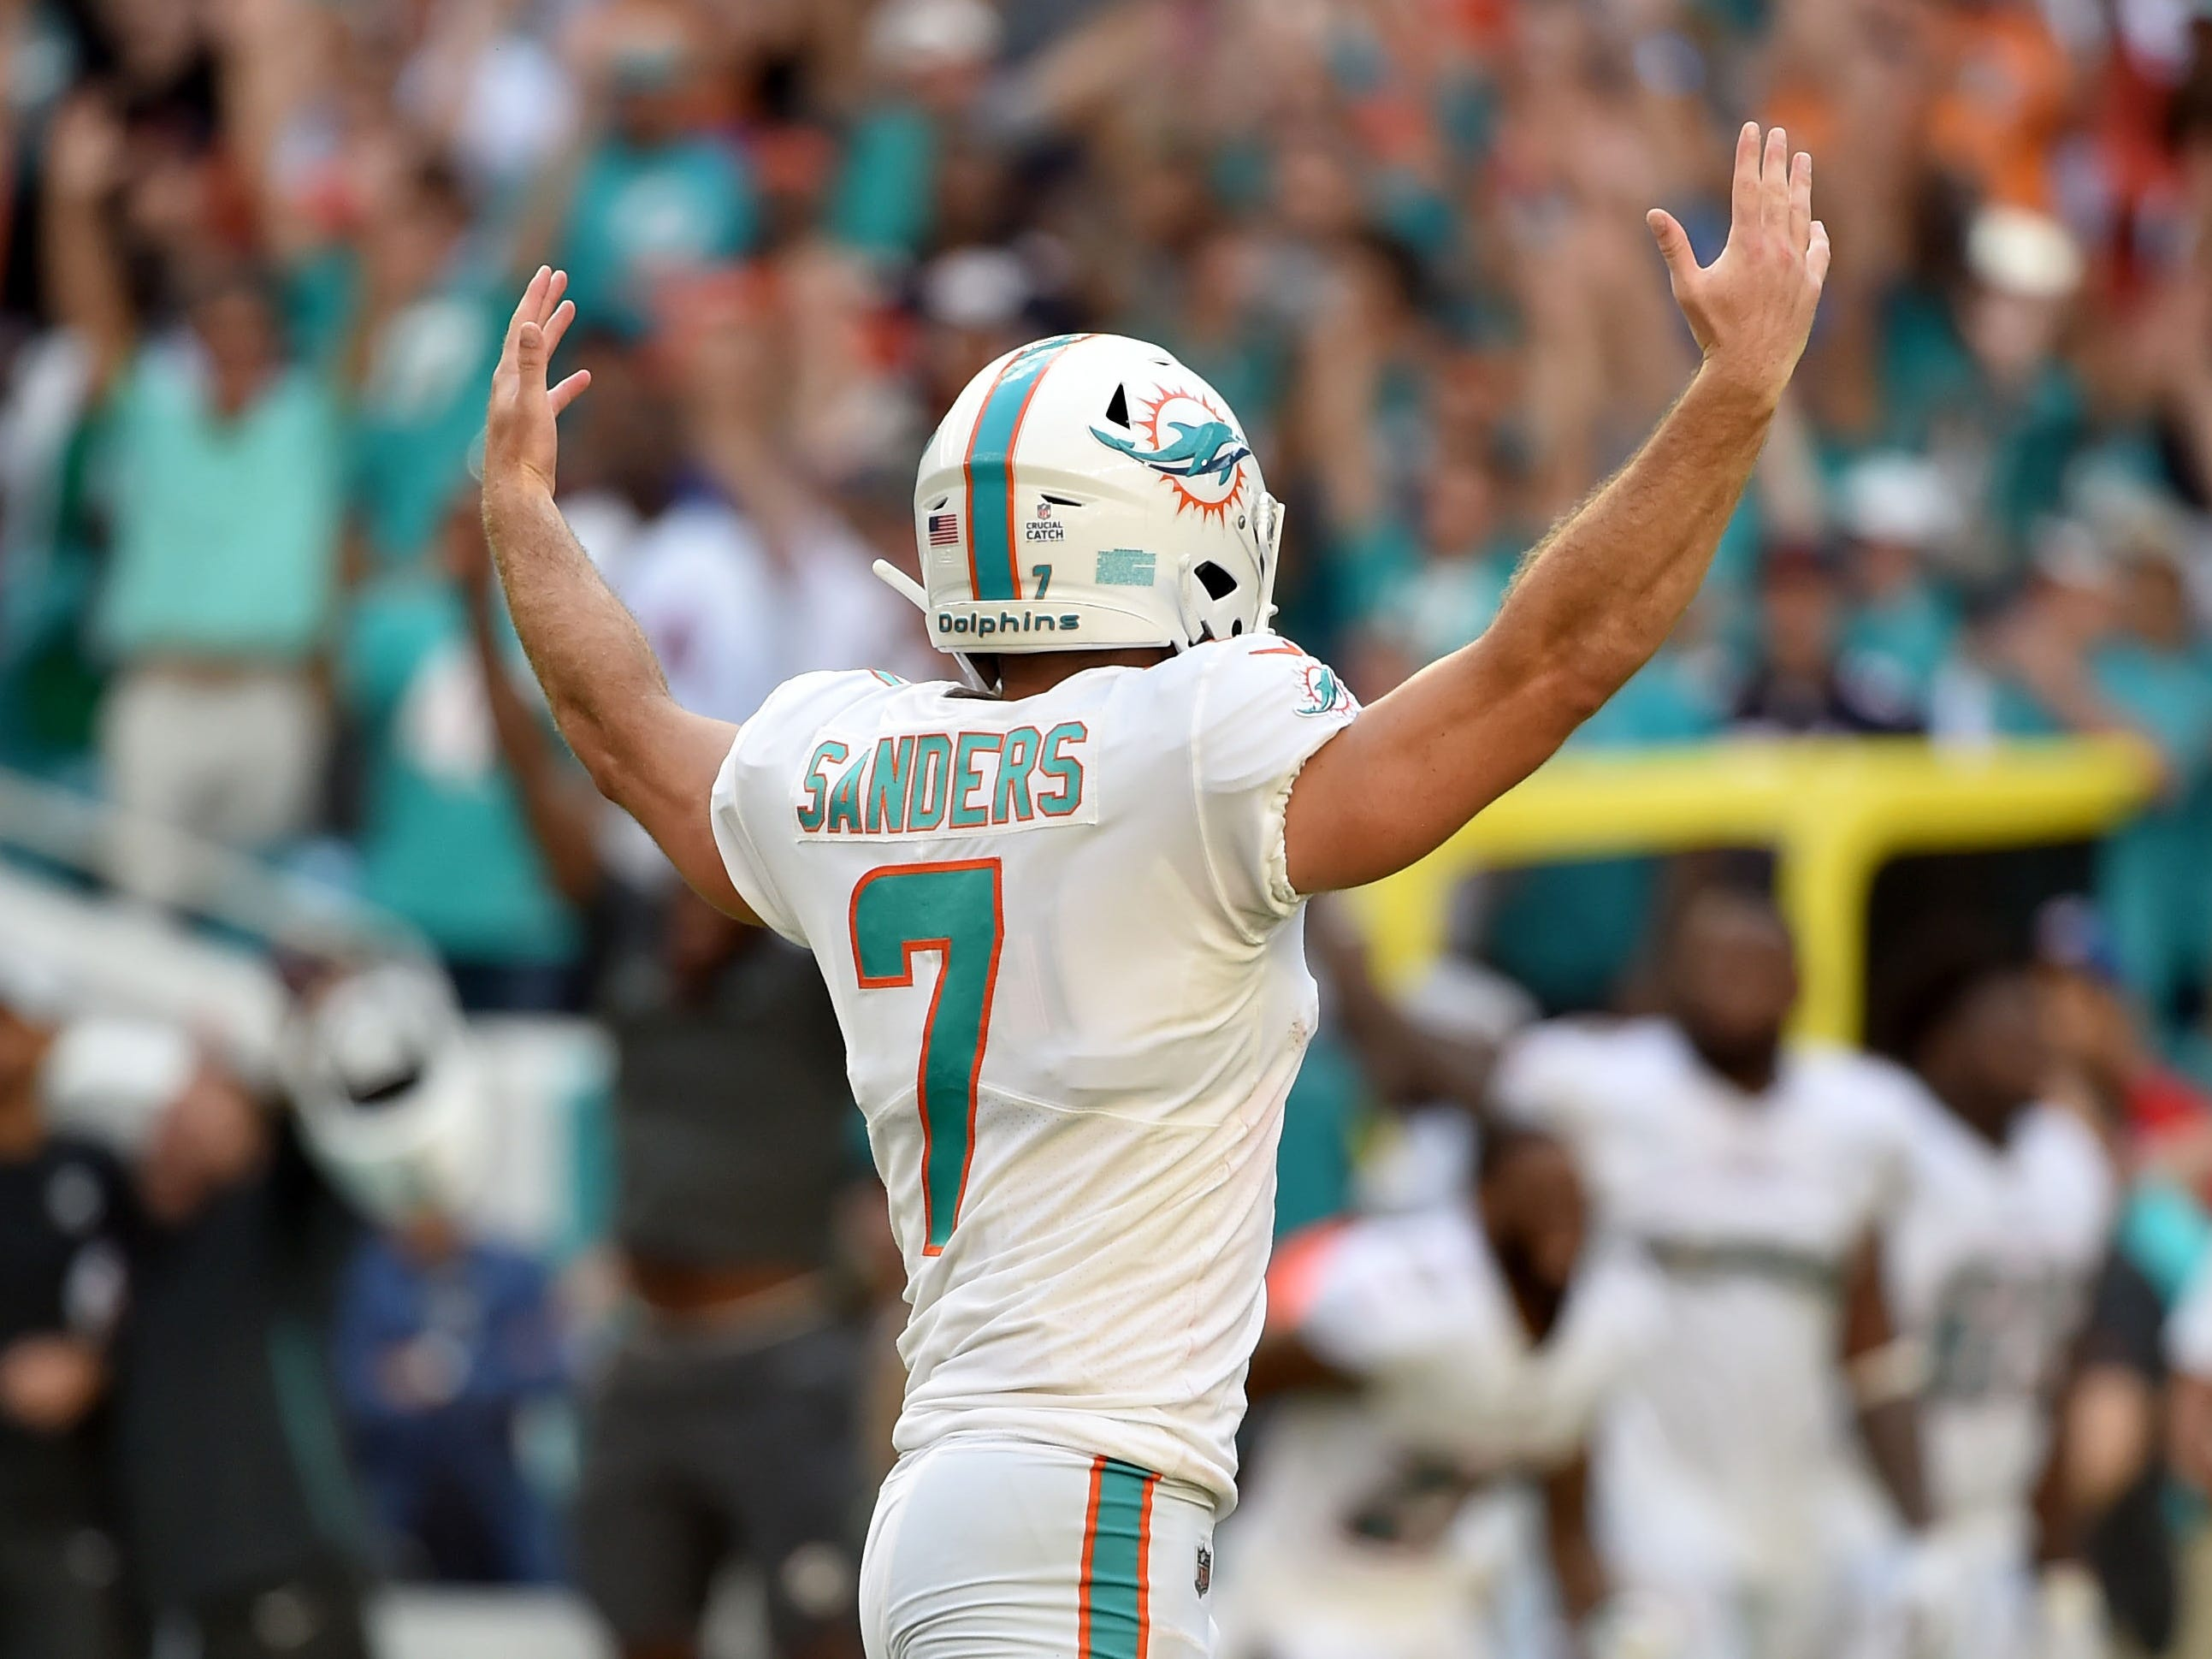 Miami Dolphins kicker Jason Sanders celebrates after kicking the game winning field goal in overtime against the Chicago Bears at Hard Rock Stadium.